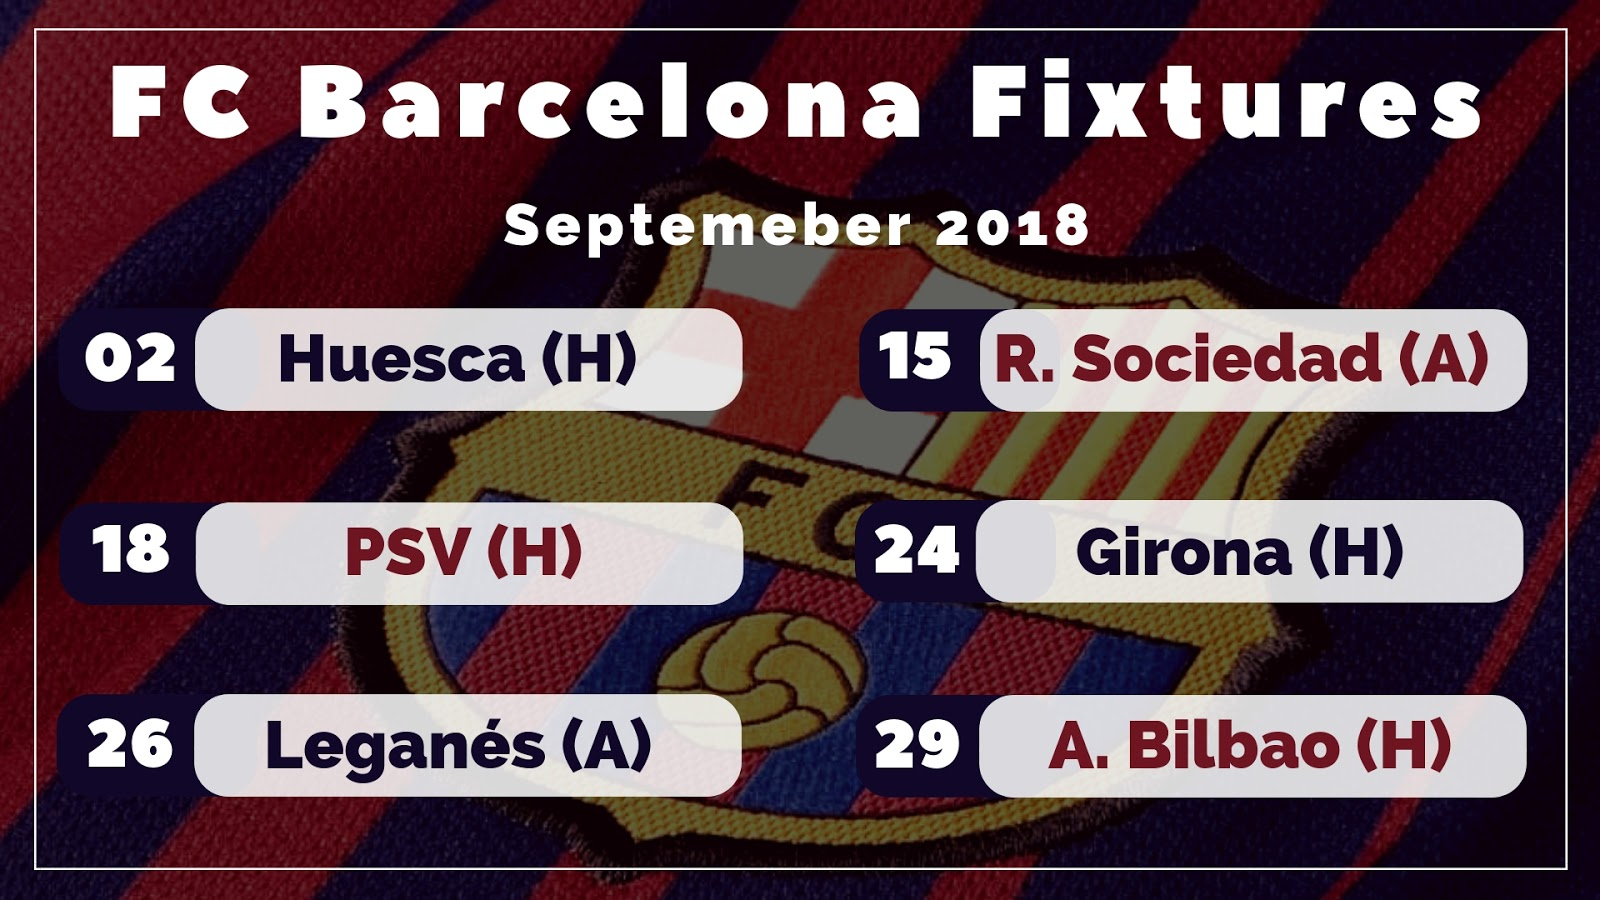 FC Barcelona's Fixture List for September 2018